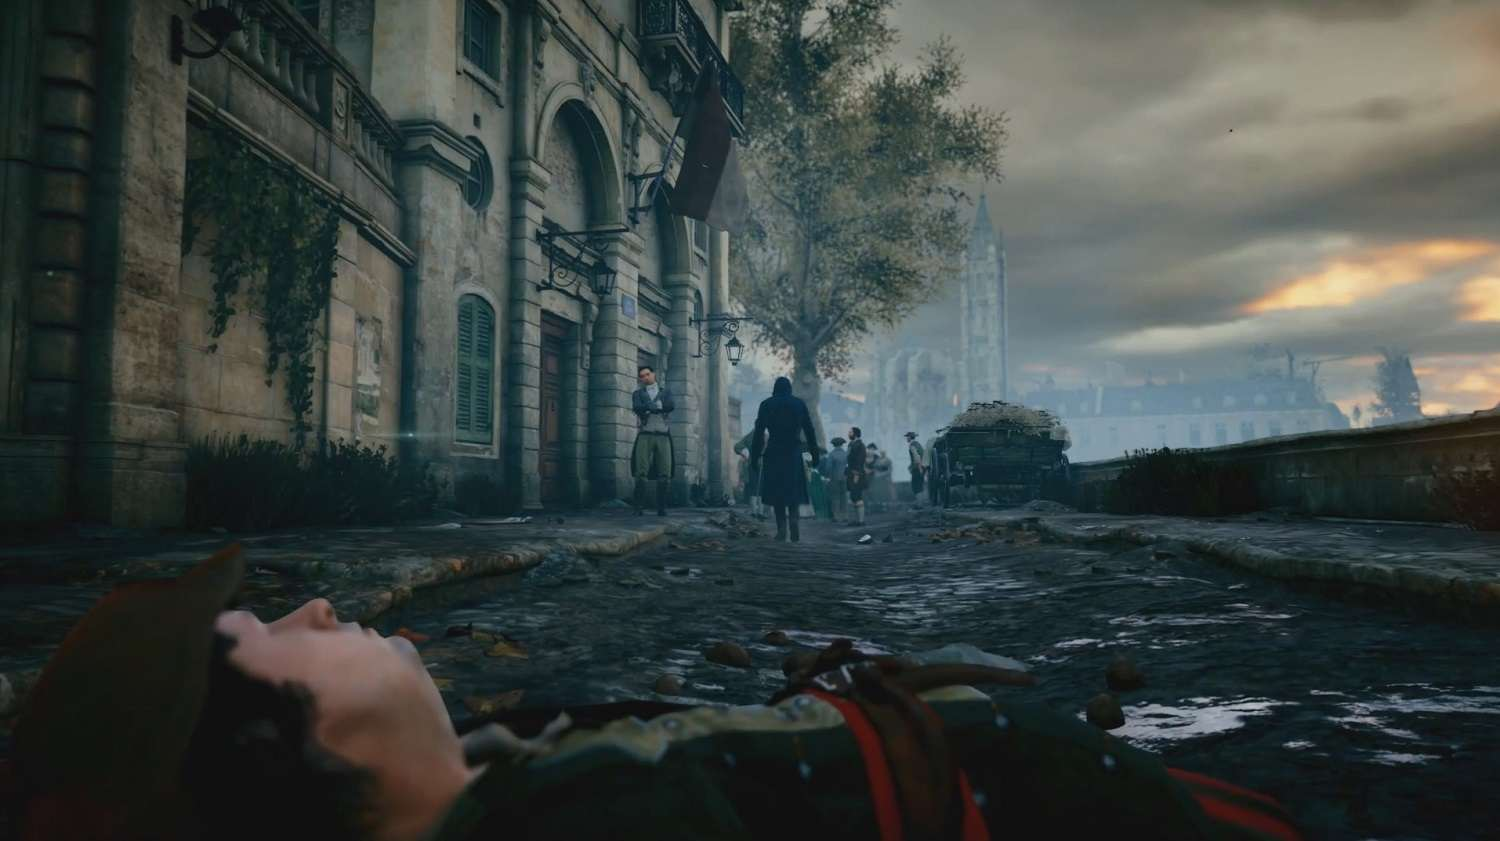 assassins-creed-unity-pc-walking-away-screenshot (1)